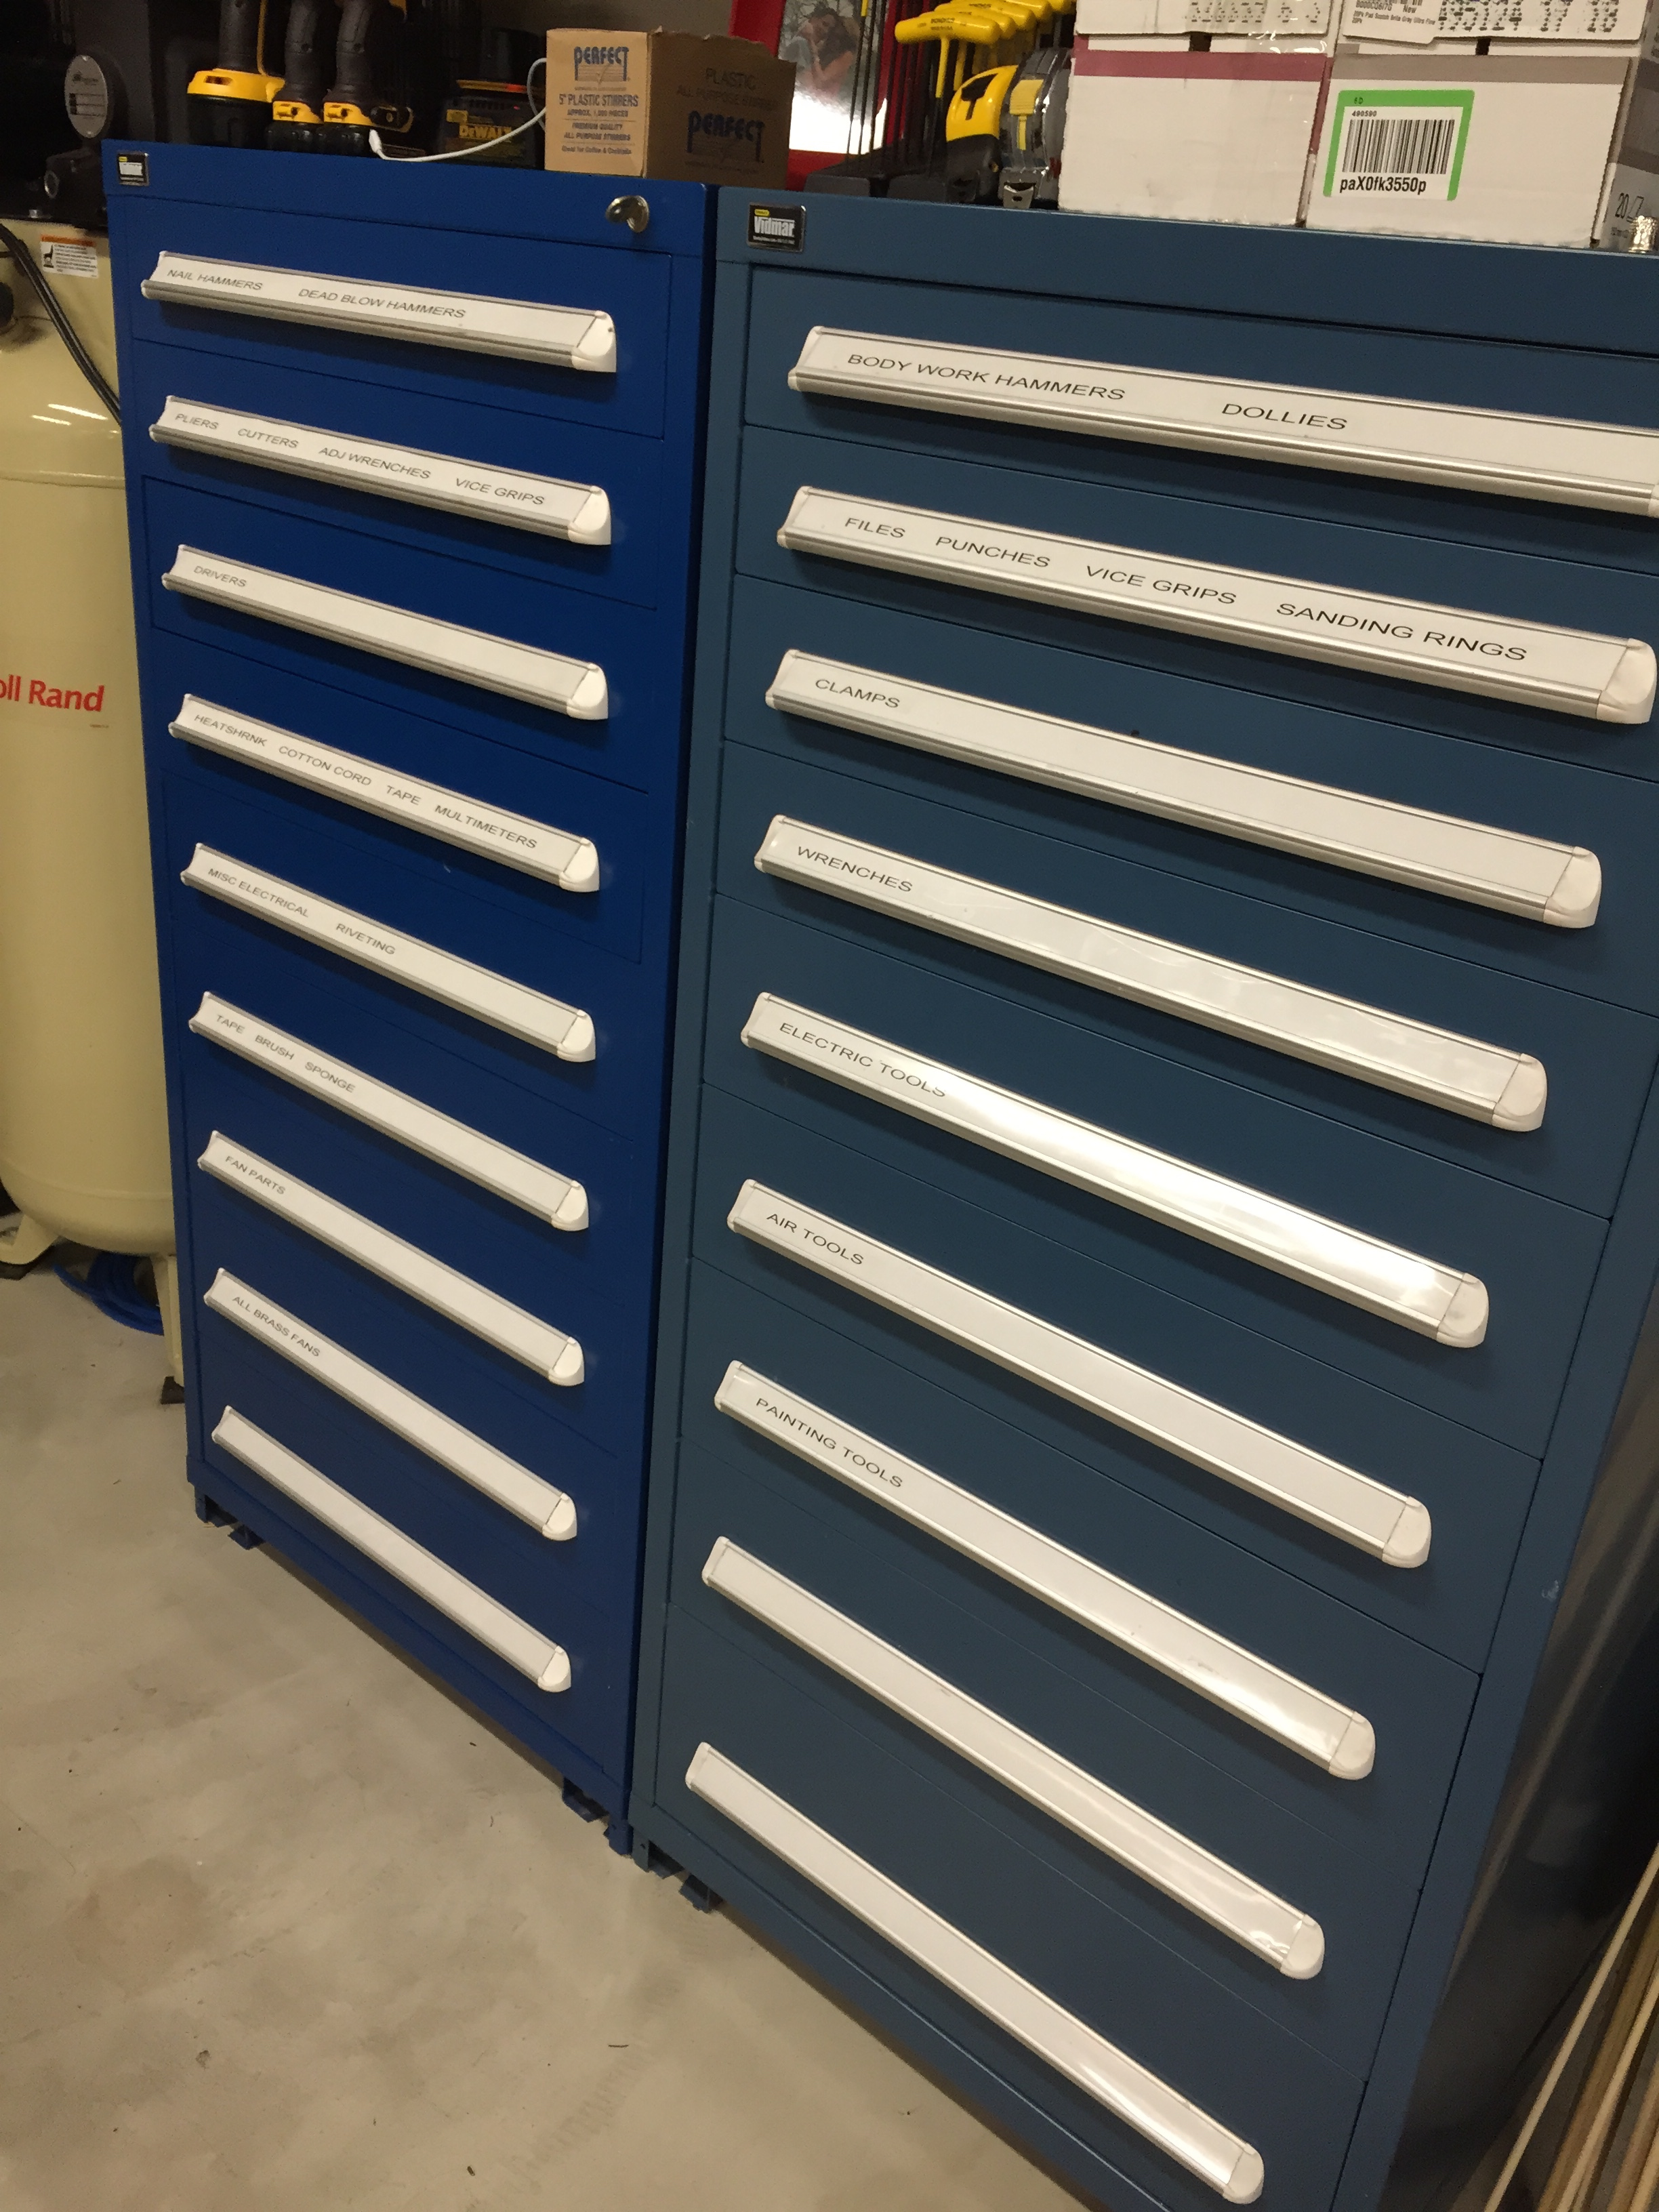 Two tall Vidmar storage cabinets. Probably my absolute favorite tools. Each drawer can hold over 300lbs worth of tools.